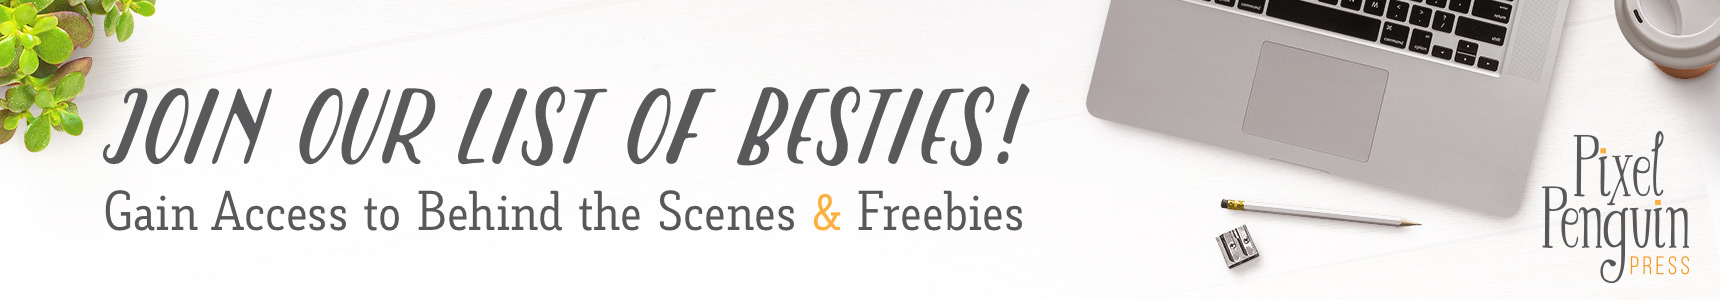 Join our list of besties and gain access to behind the scenes and freebies!